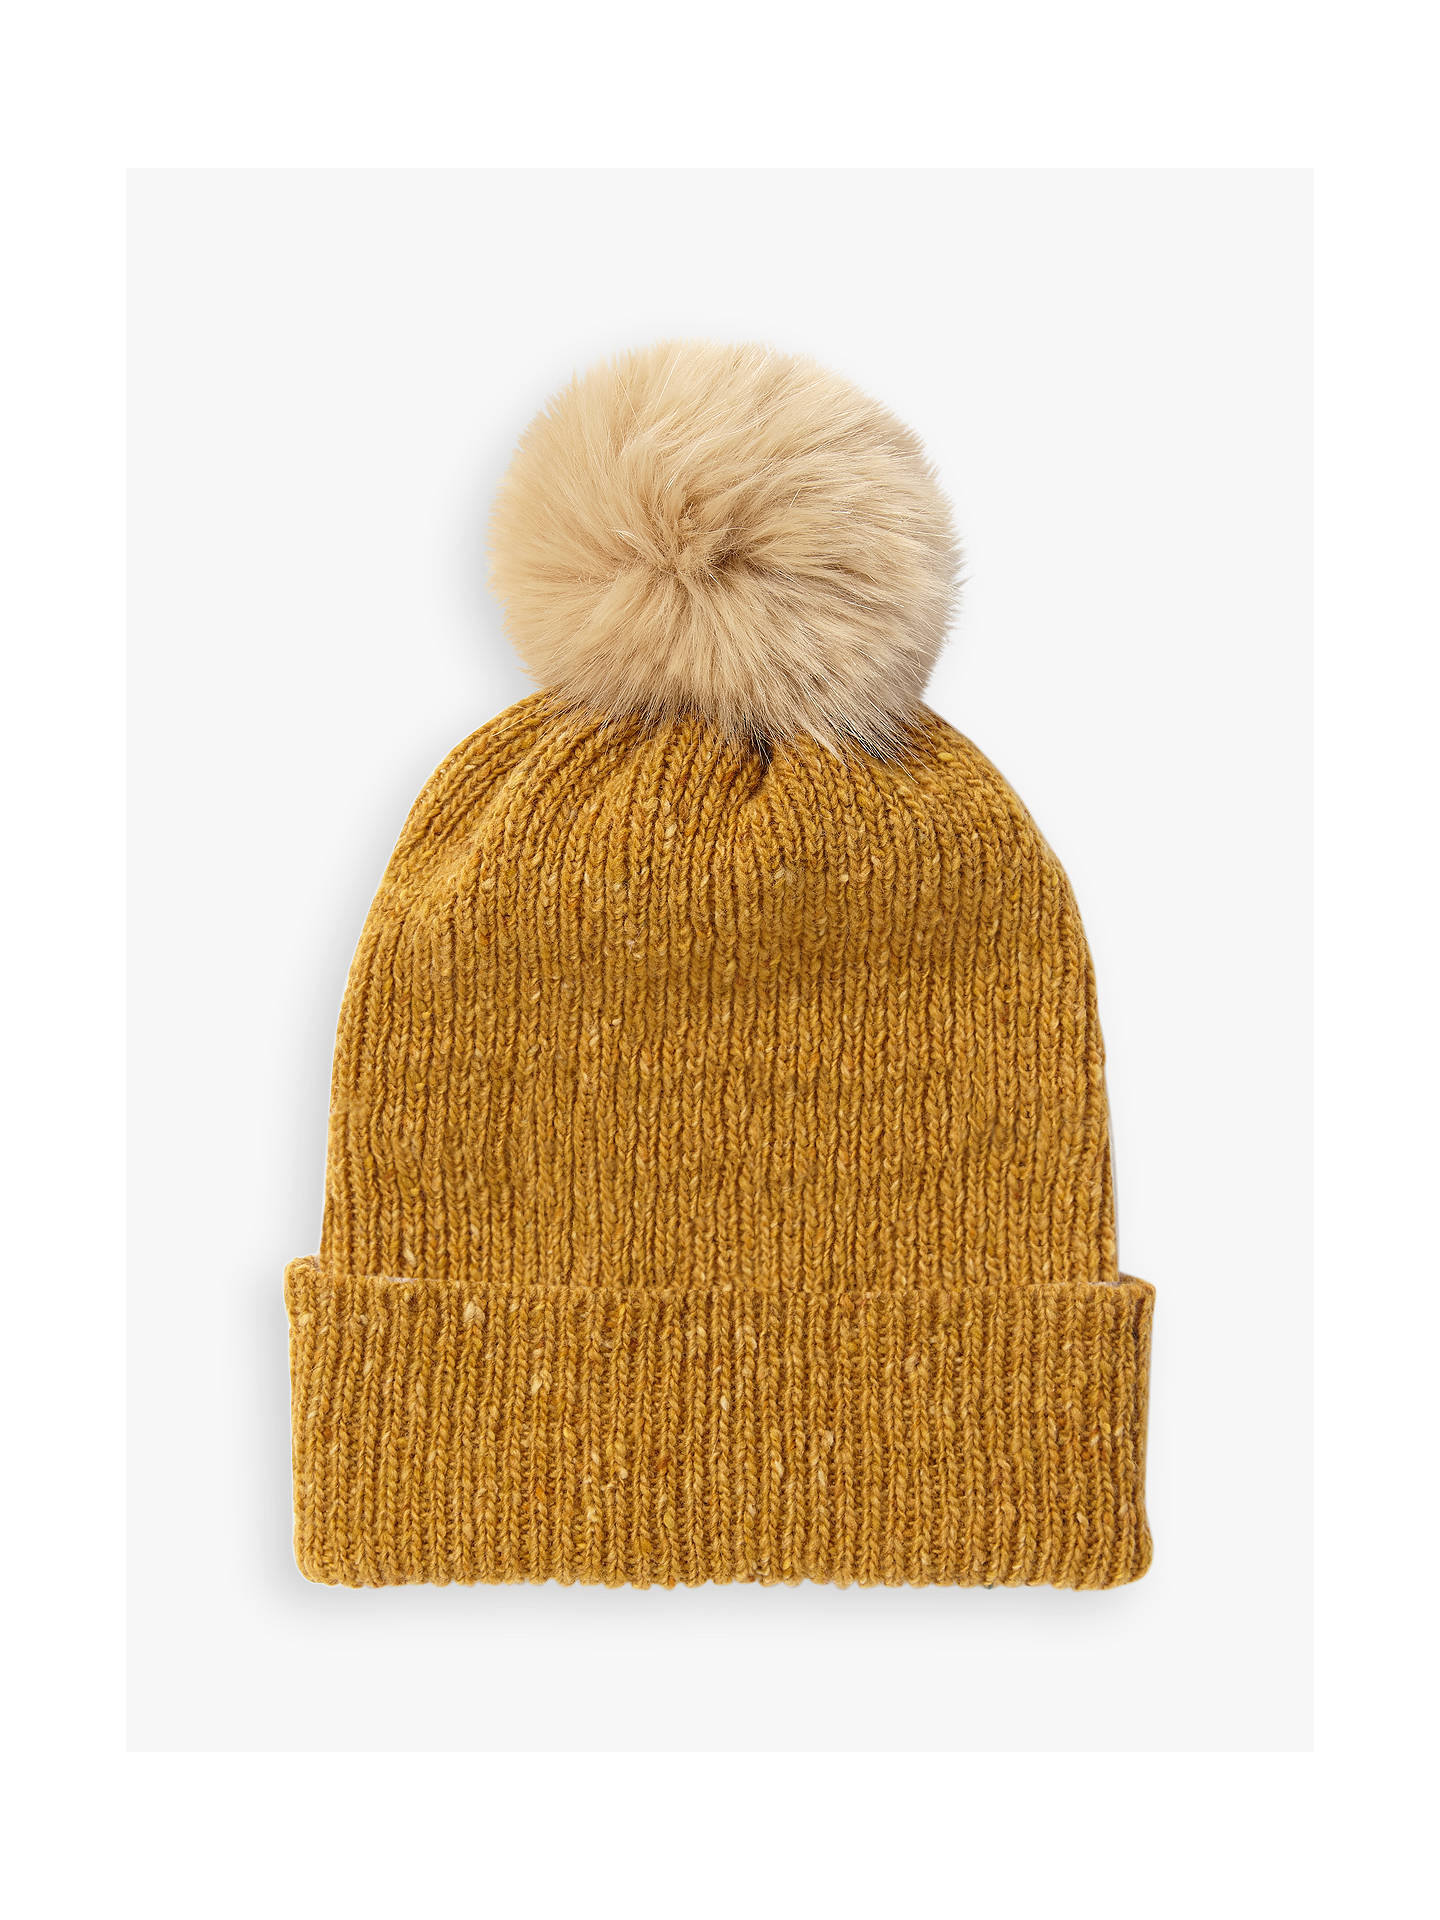 8751e534c5c Buy Jigsaw Donegal Stripe Pom Pom Wool Beanie Hat